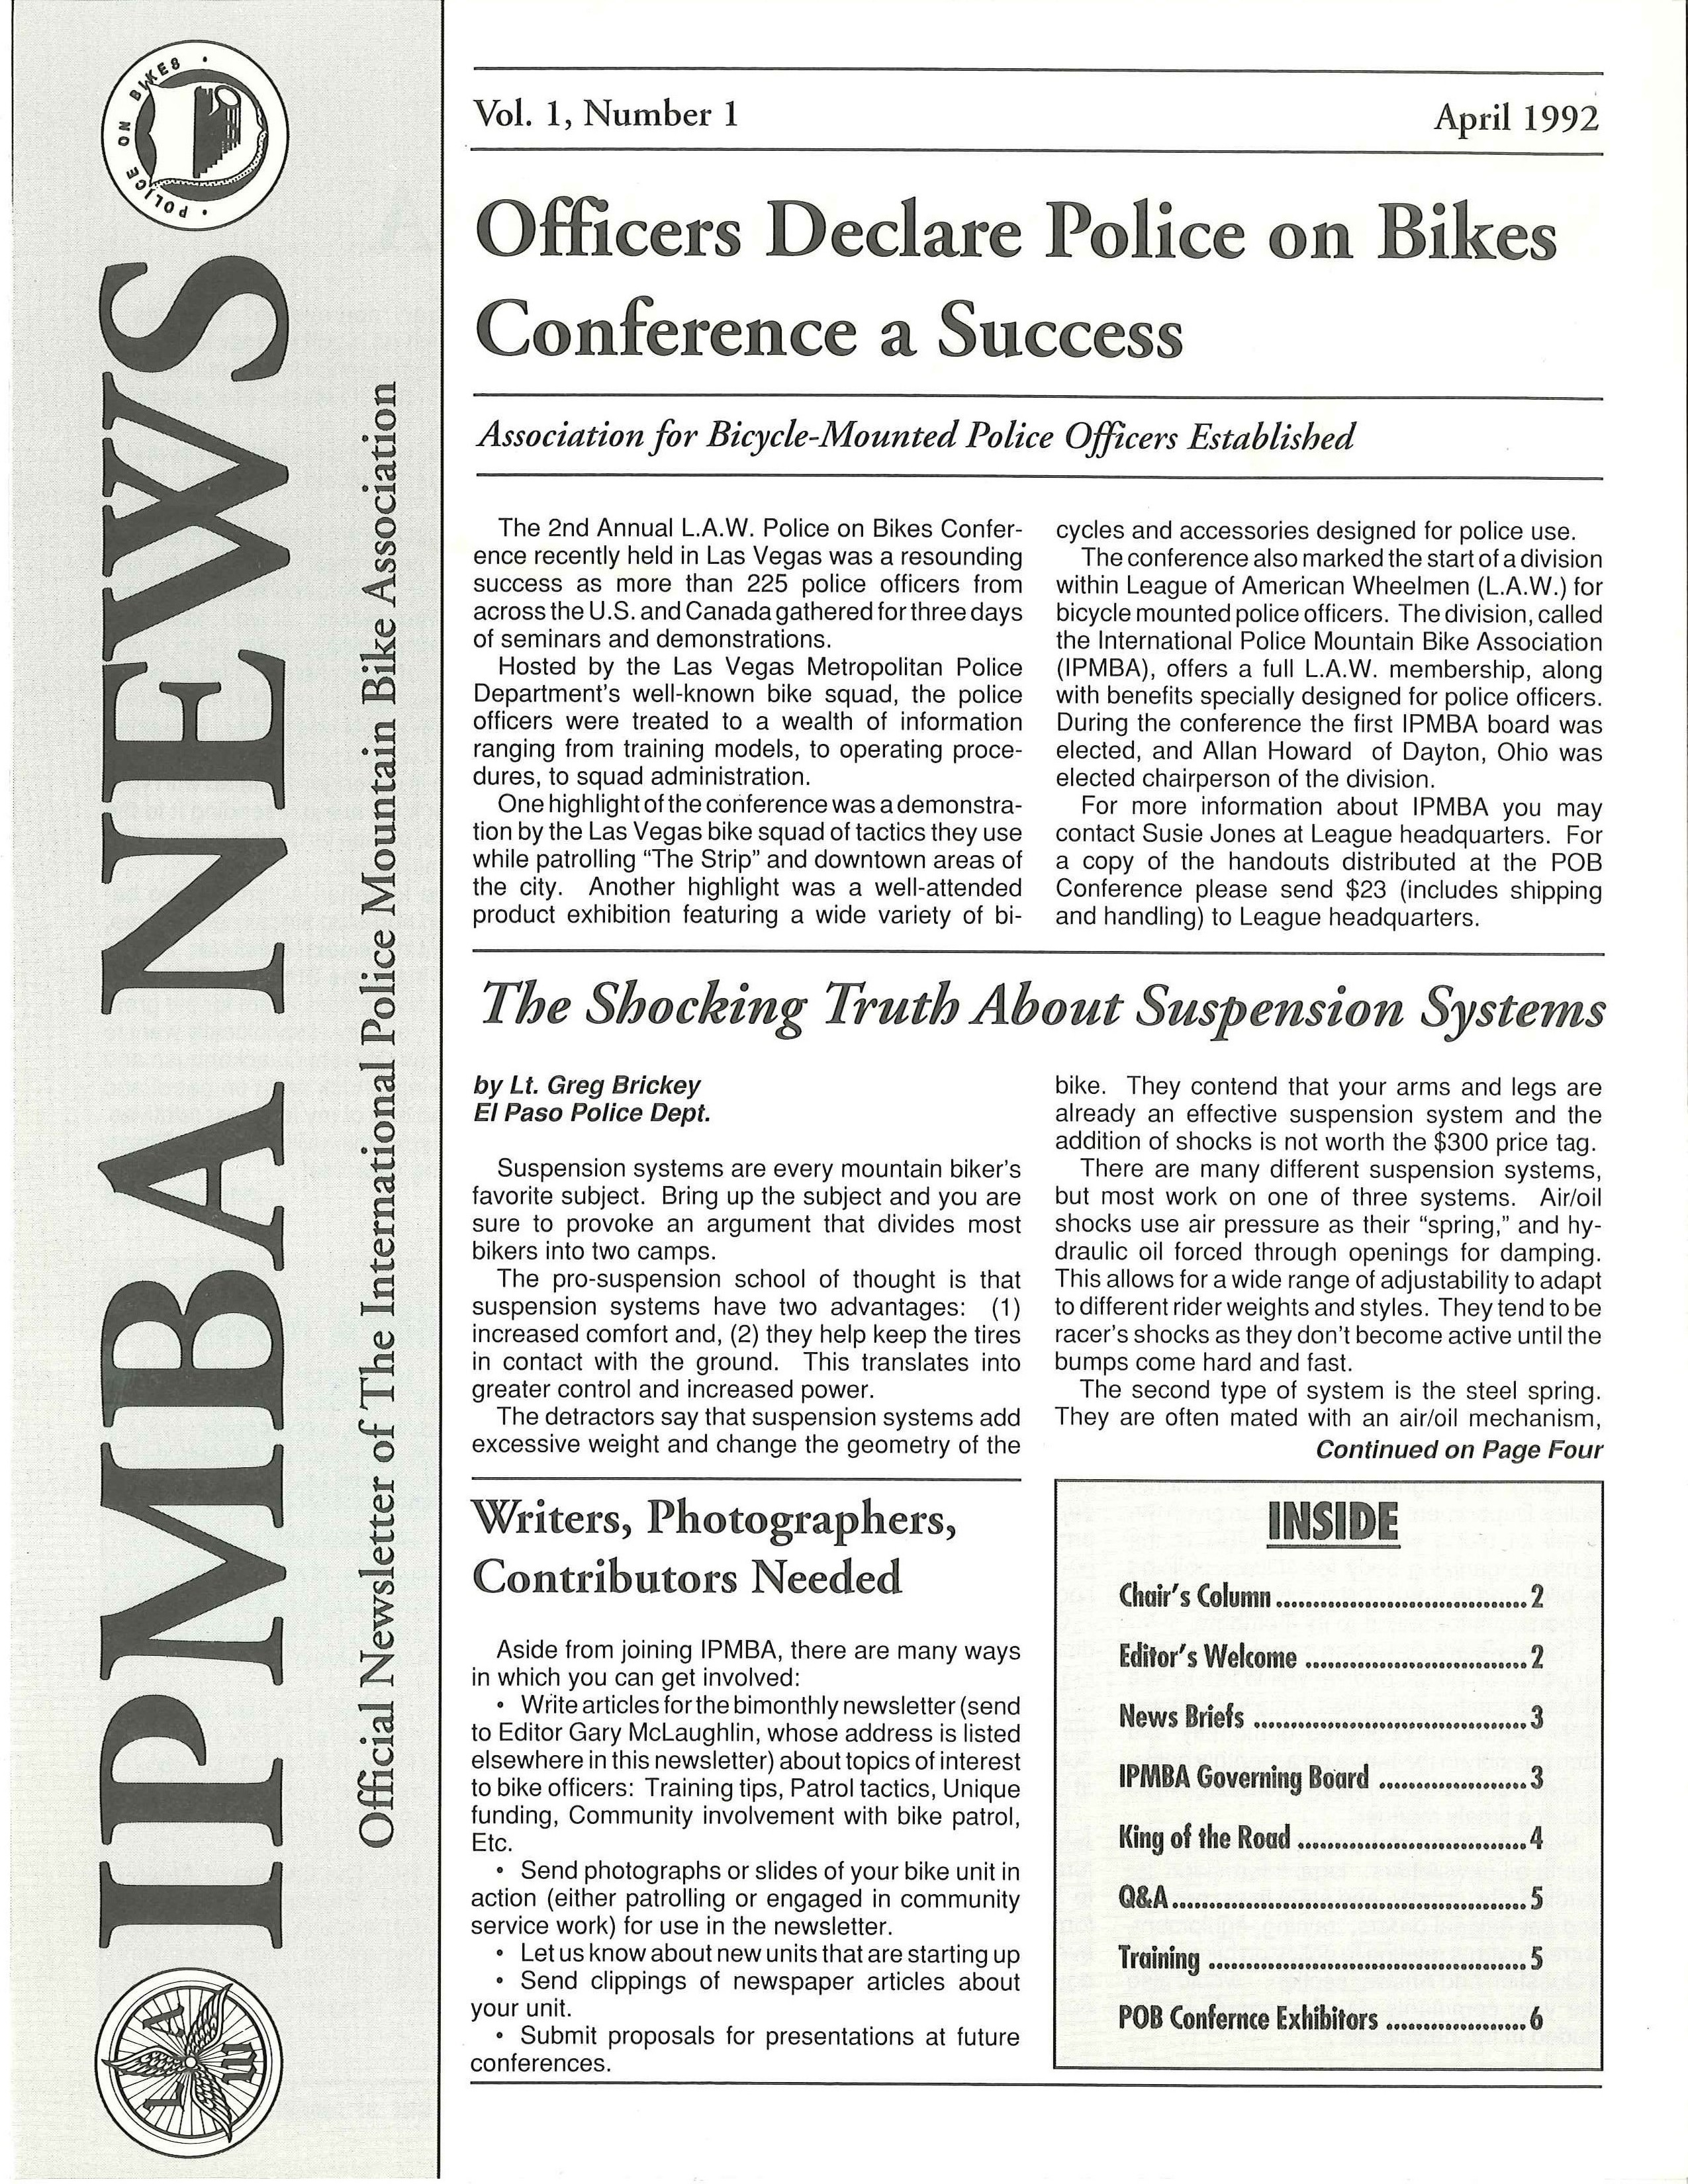 IPMBA News Vol. 1 No. 1 April 1992